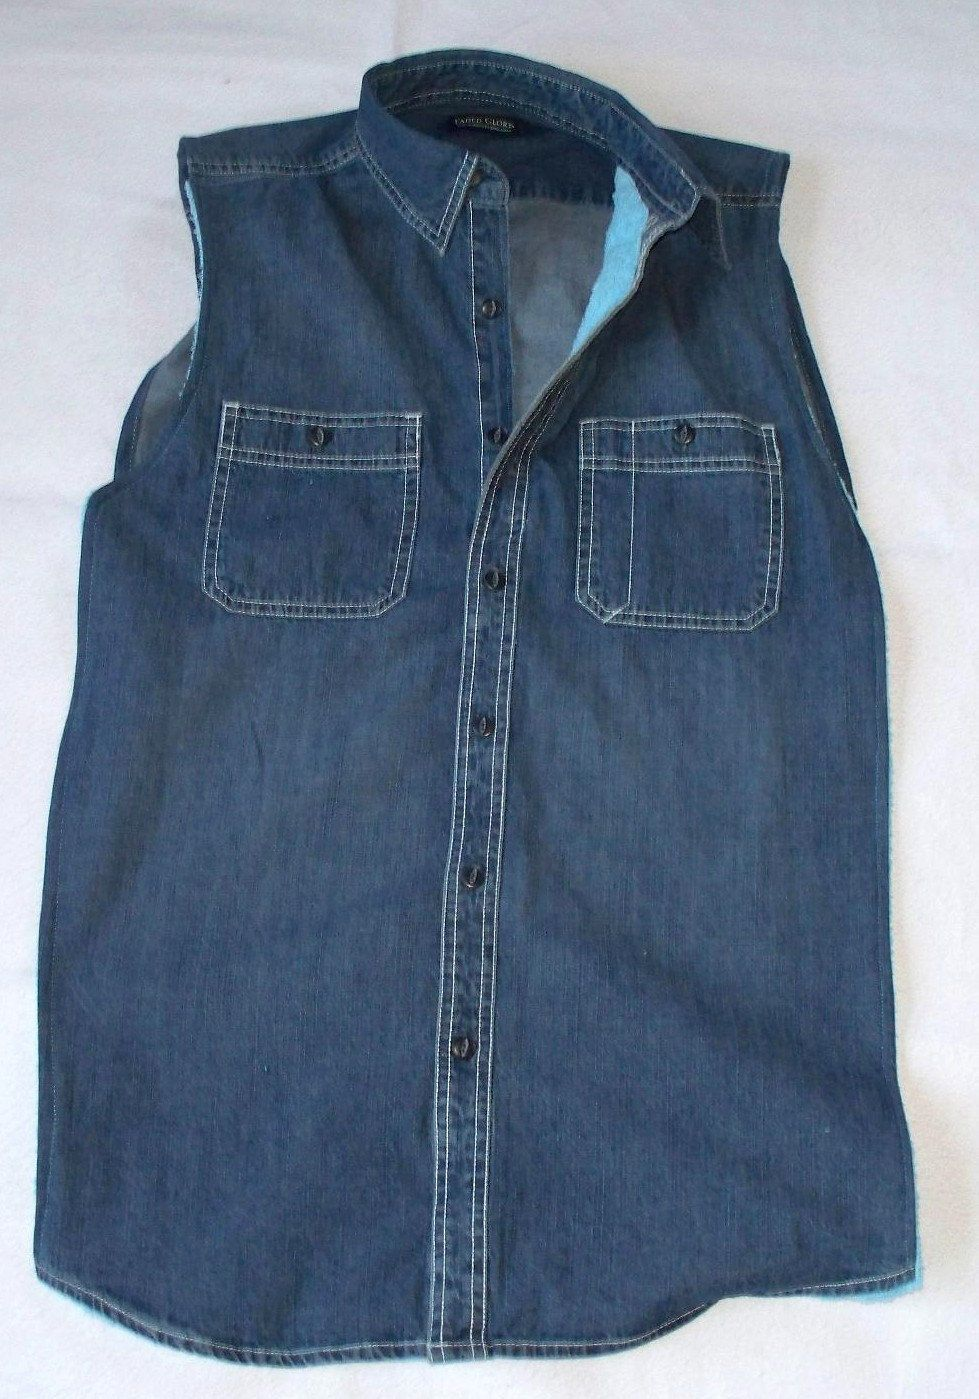 Denim Adult Clothing Protector Adult Bib 20 00 Via